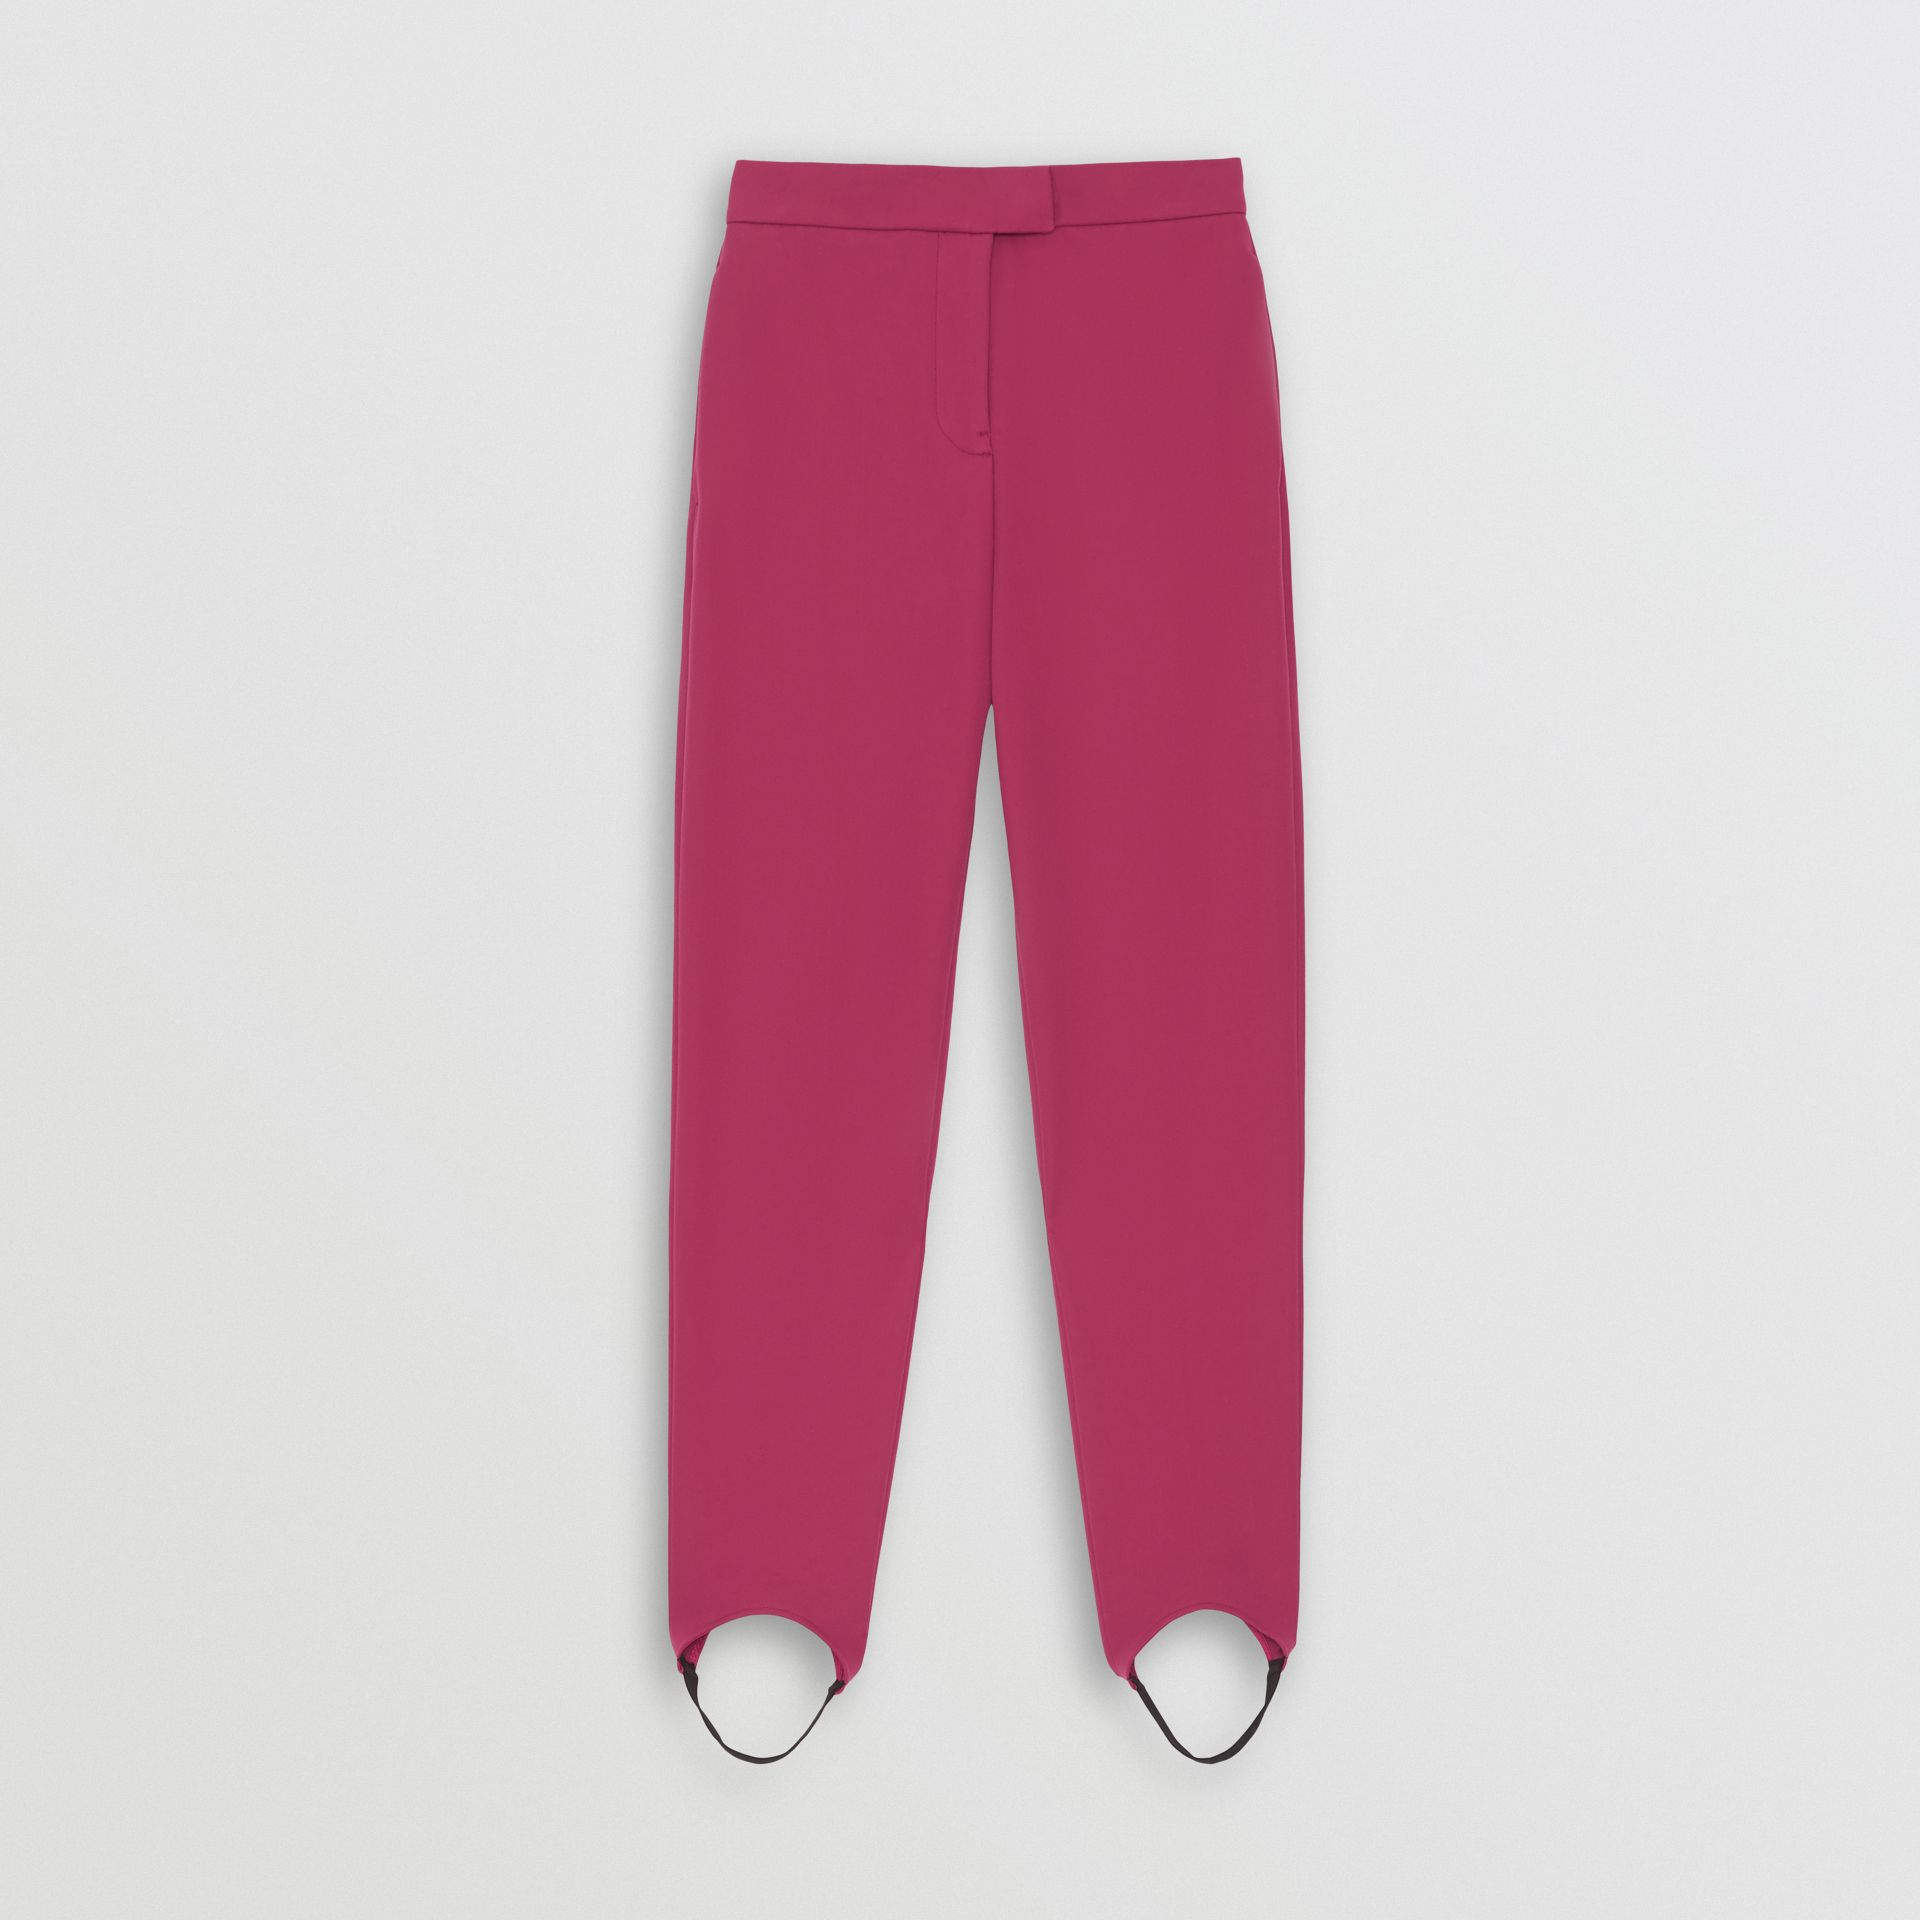 Long Cotton Blend Tailored Jodhpurs in Plum Pink - Women | Burberry United Kingdom - gallery image 3